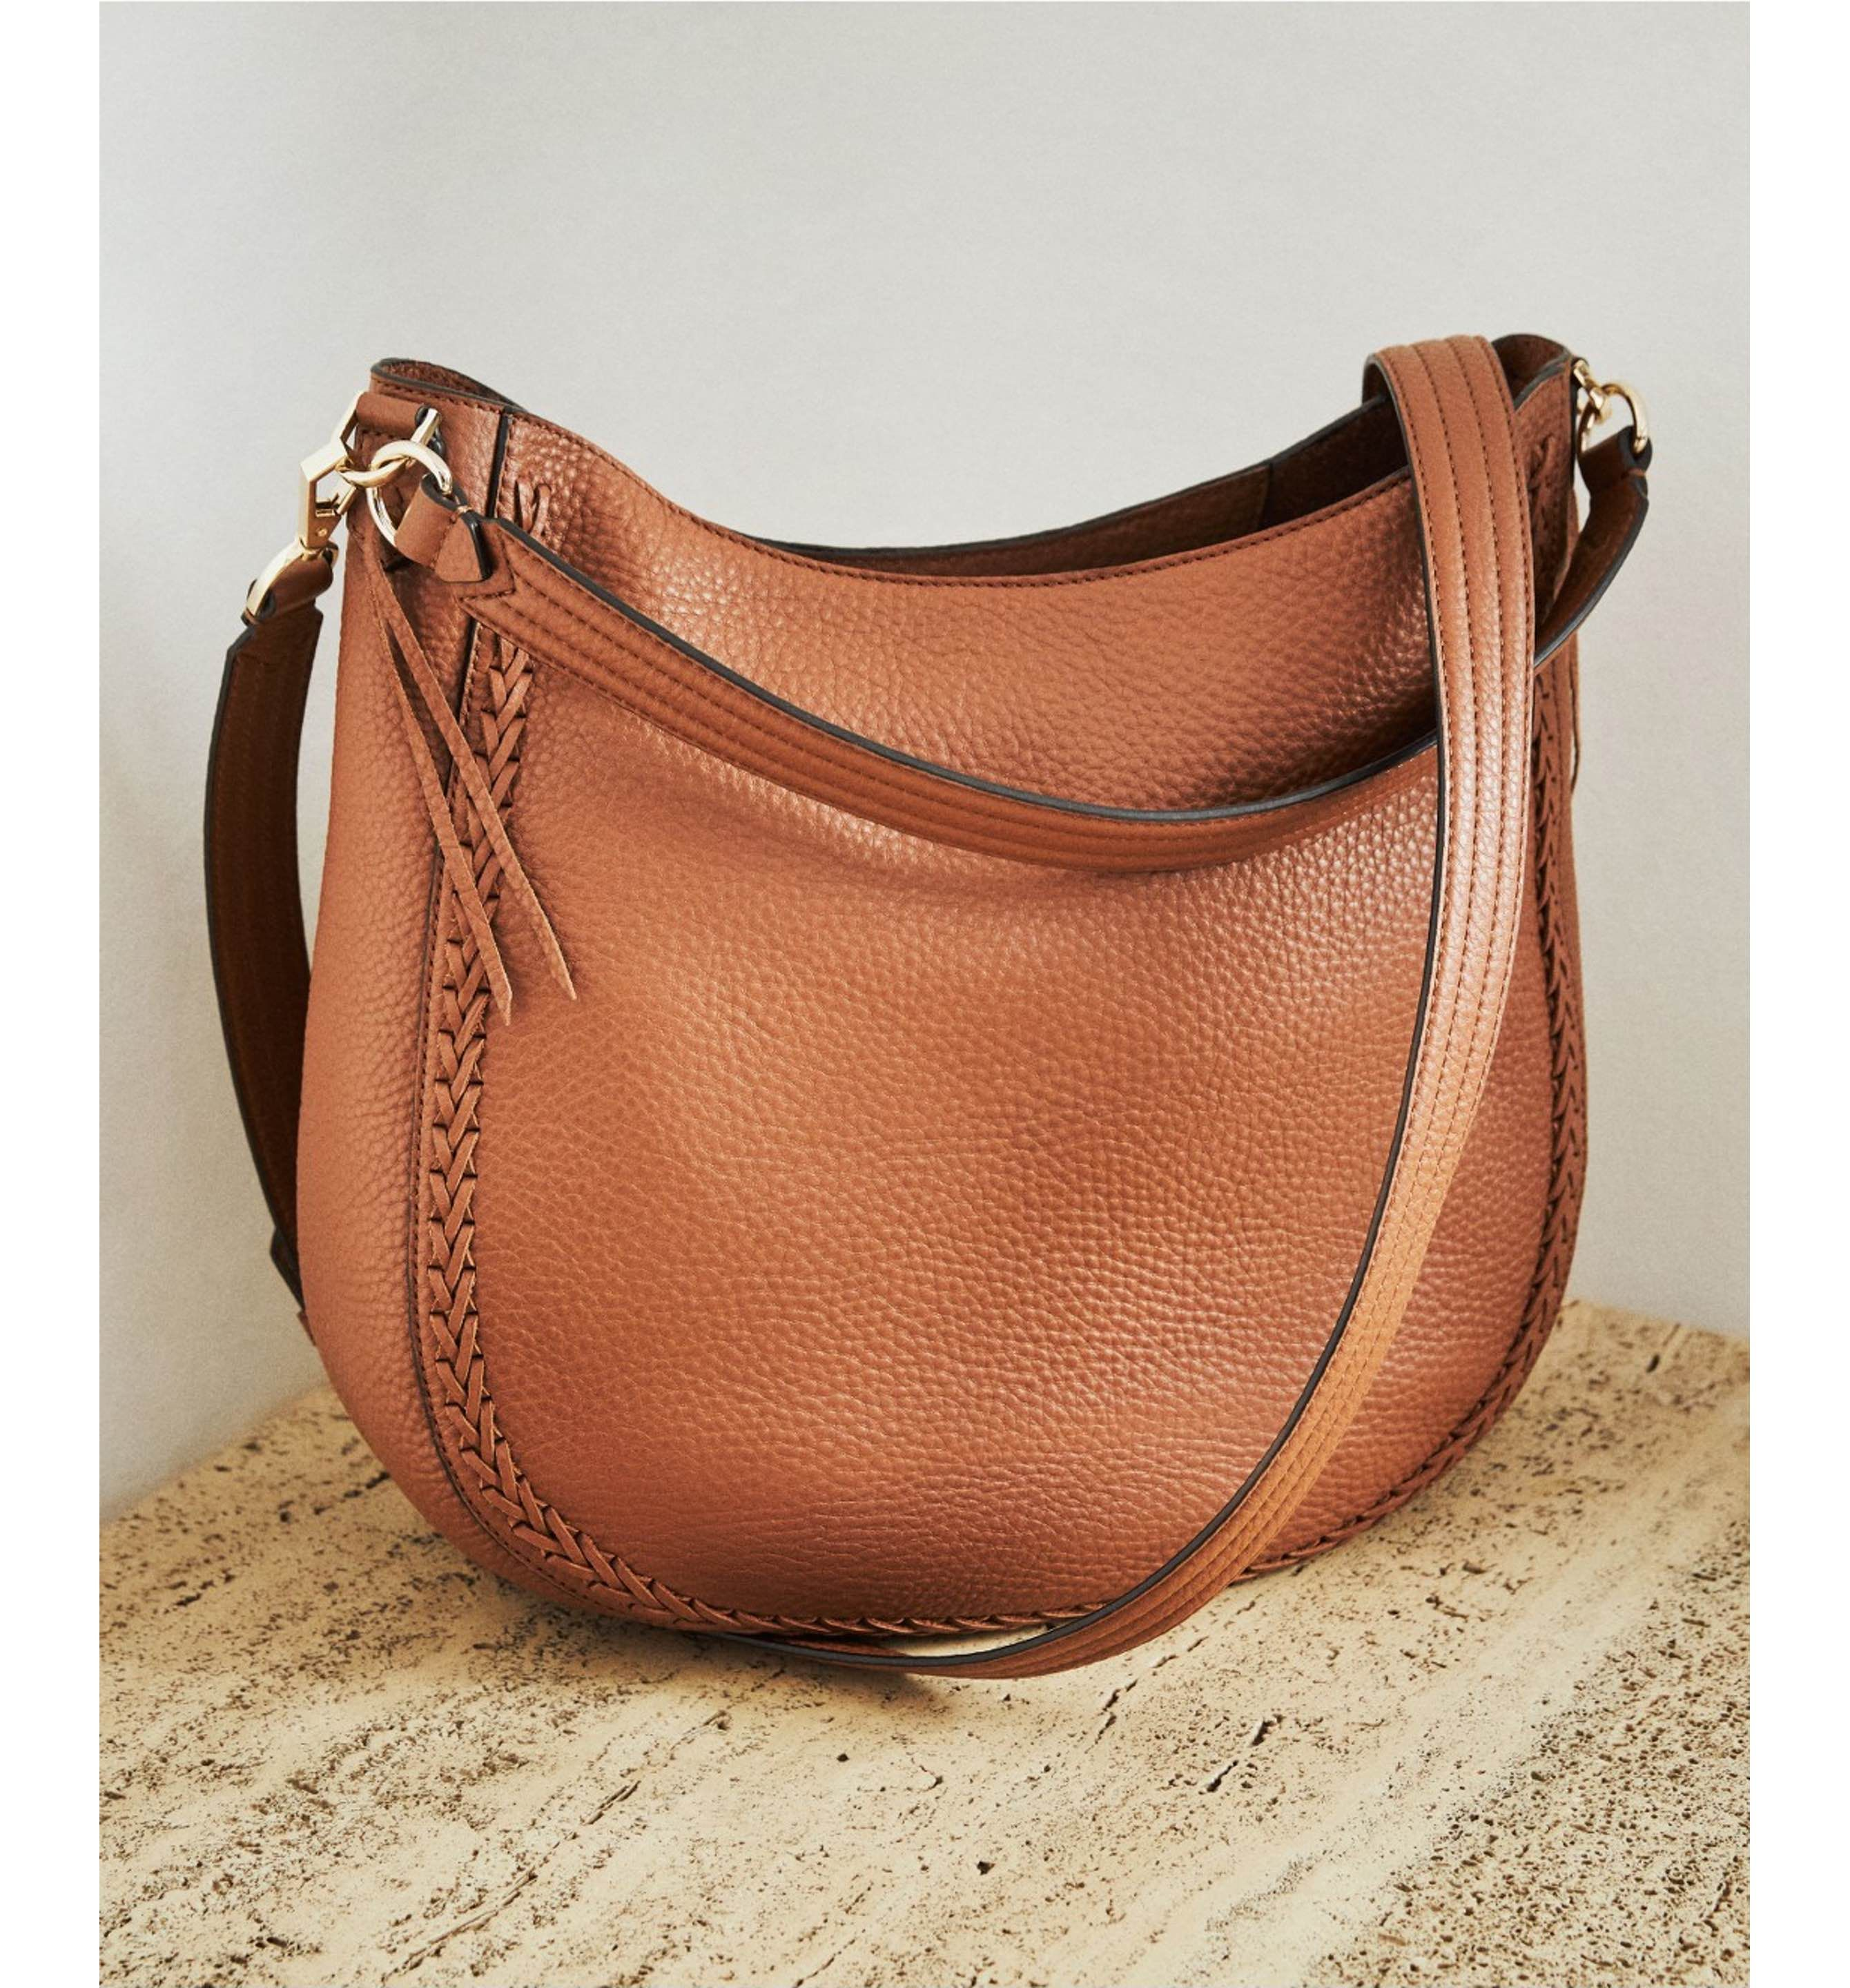 e1d4181b6e8 Main Image - Rebecca Minkoff Unlined Convertible Whipstitch Hobo (Nordstrom  Exclusive)